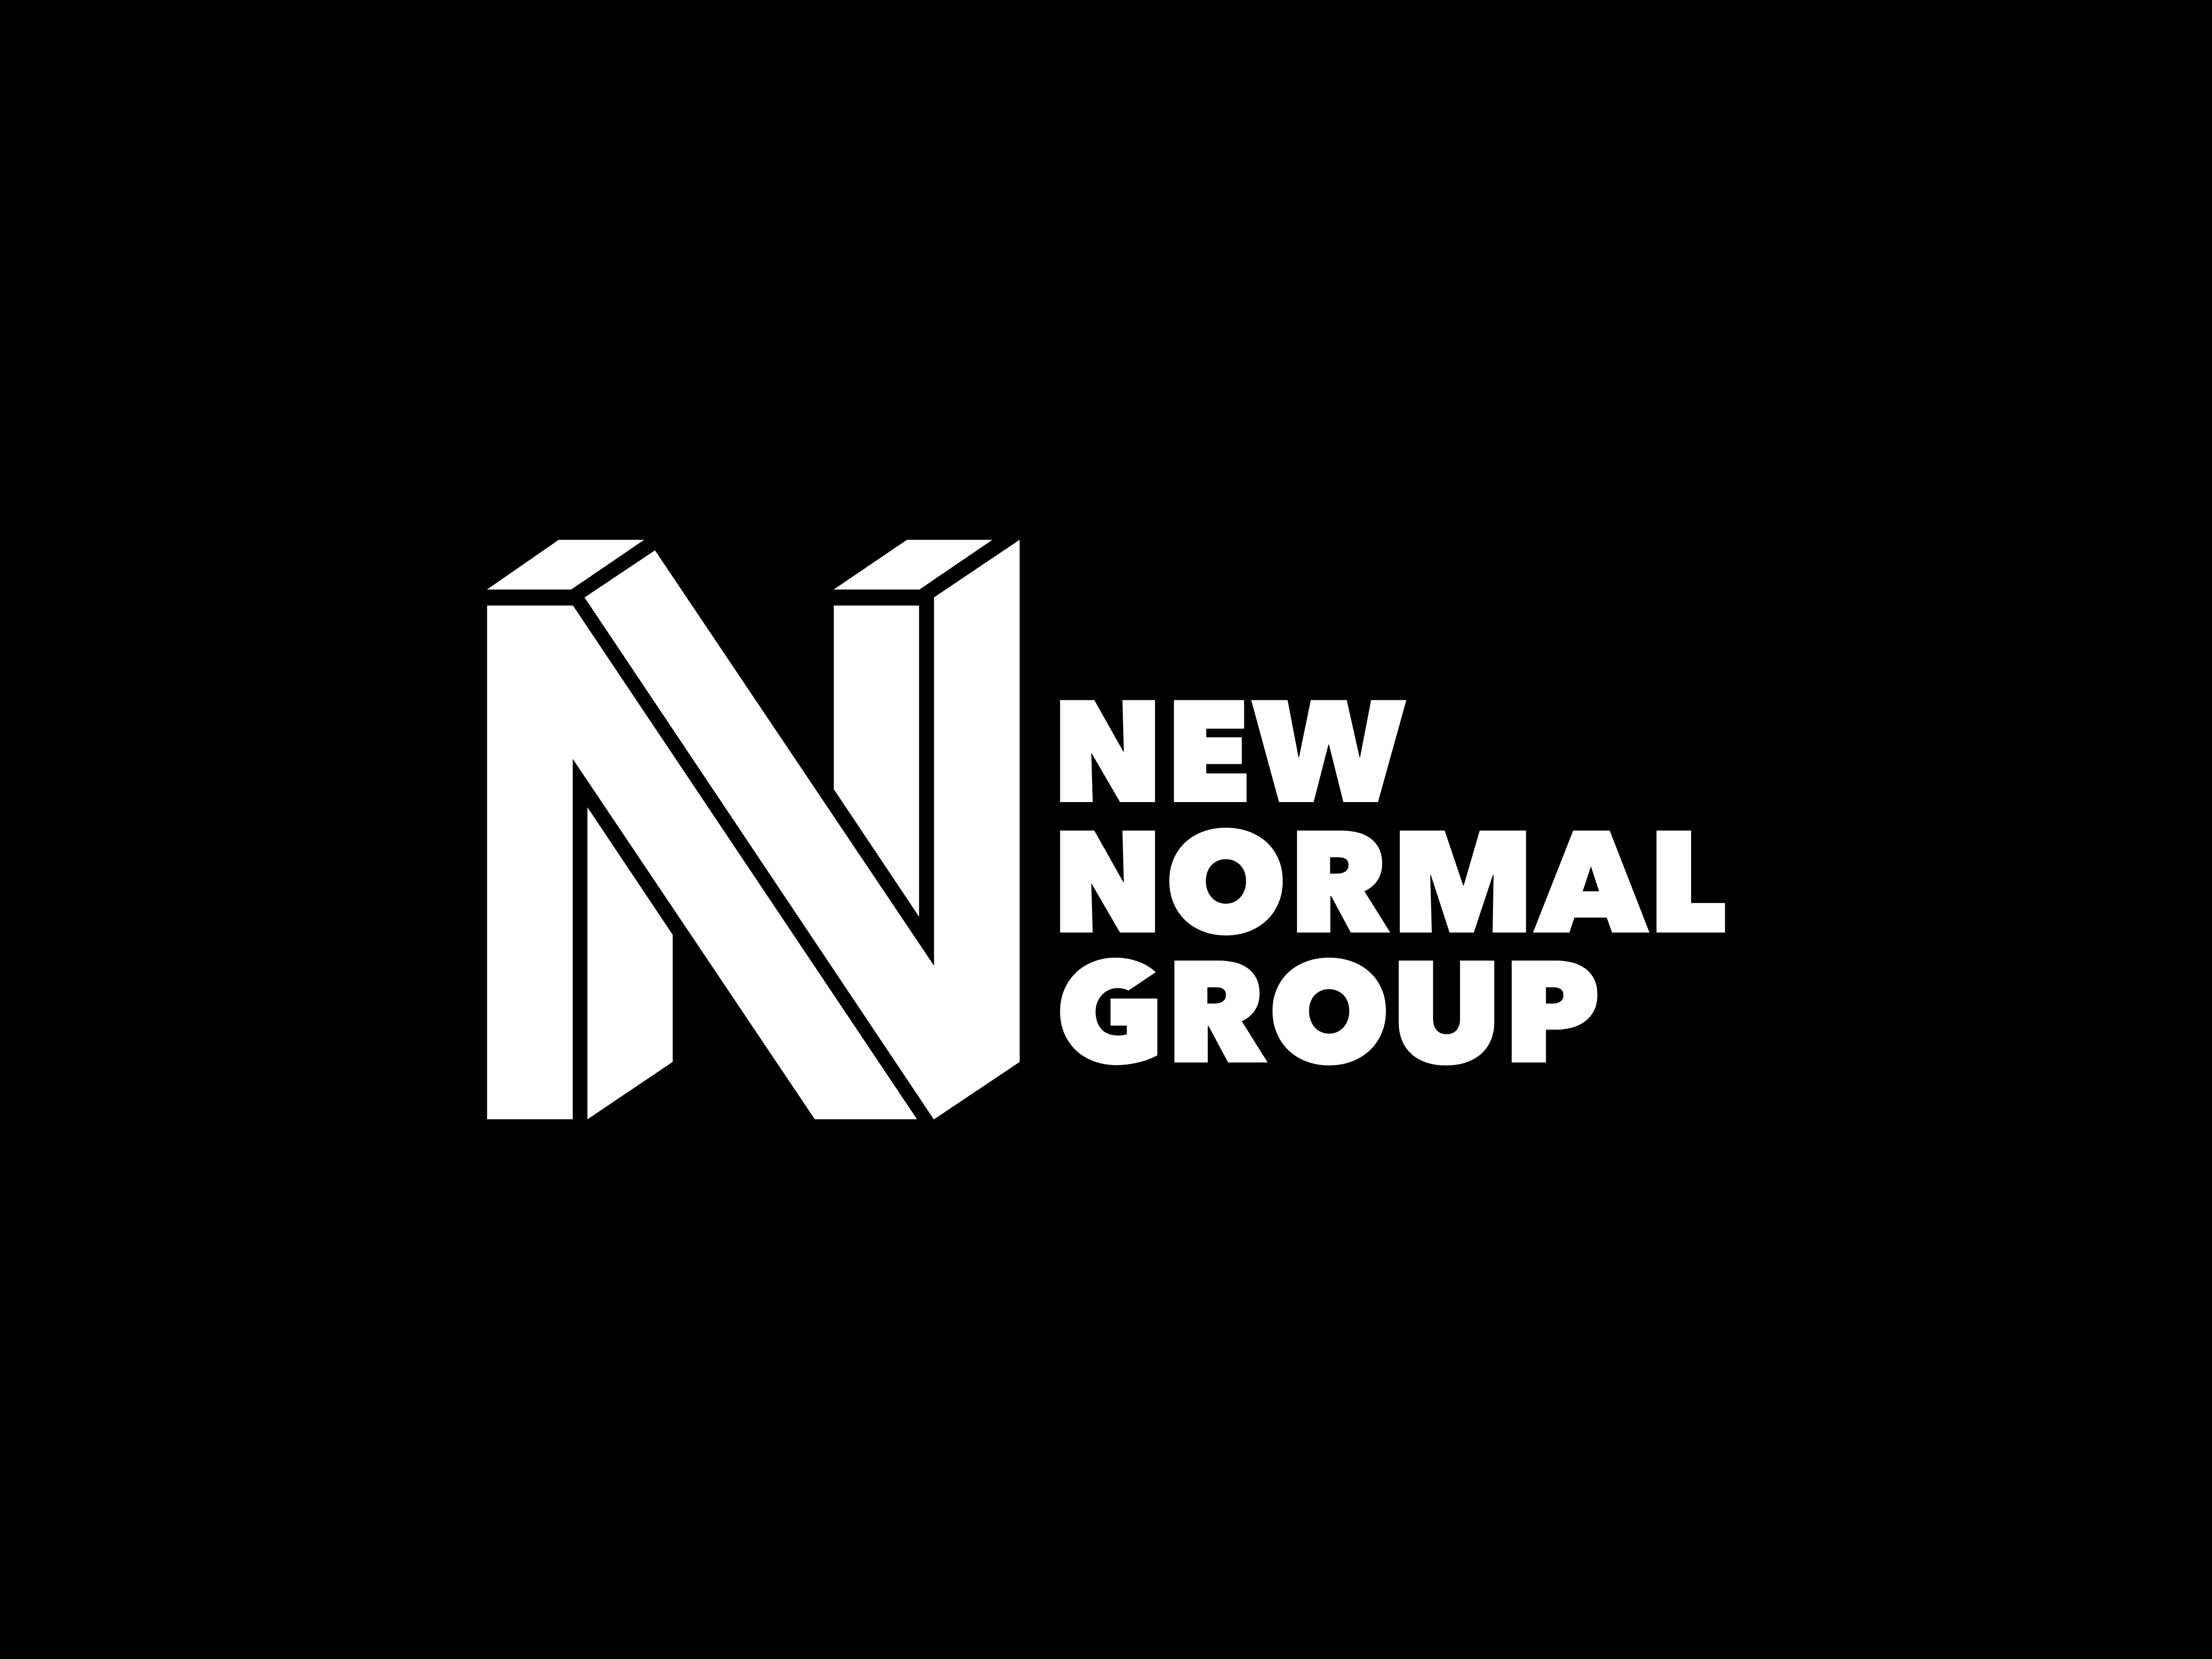 New Normal Group Identity